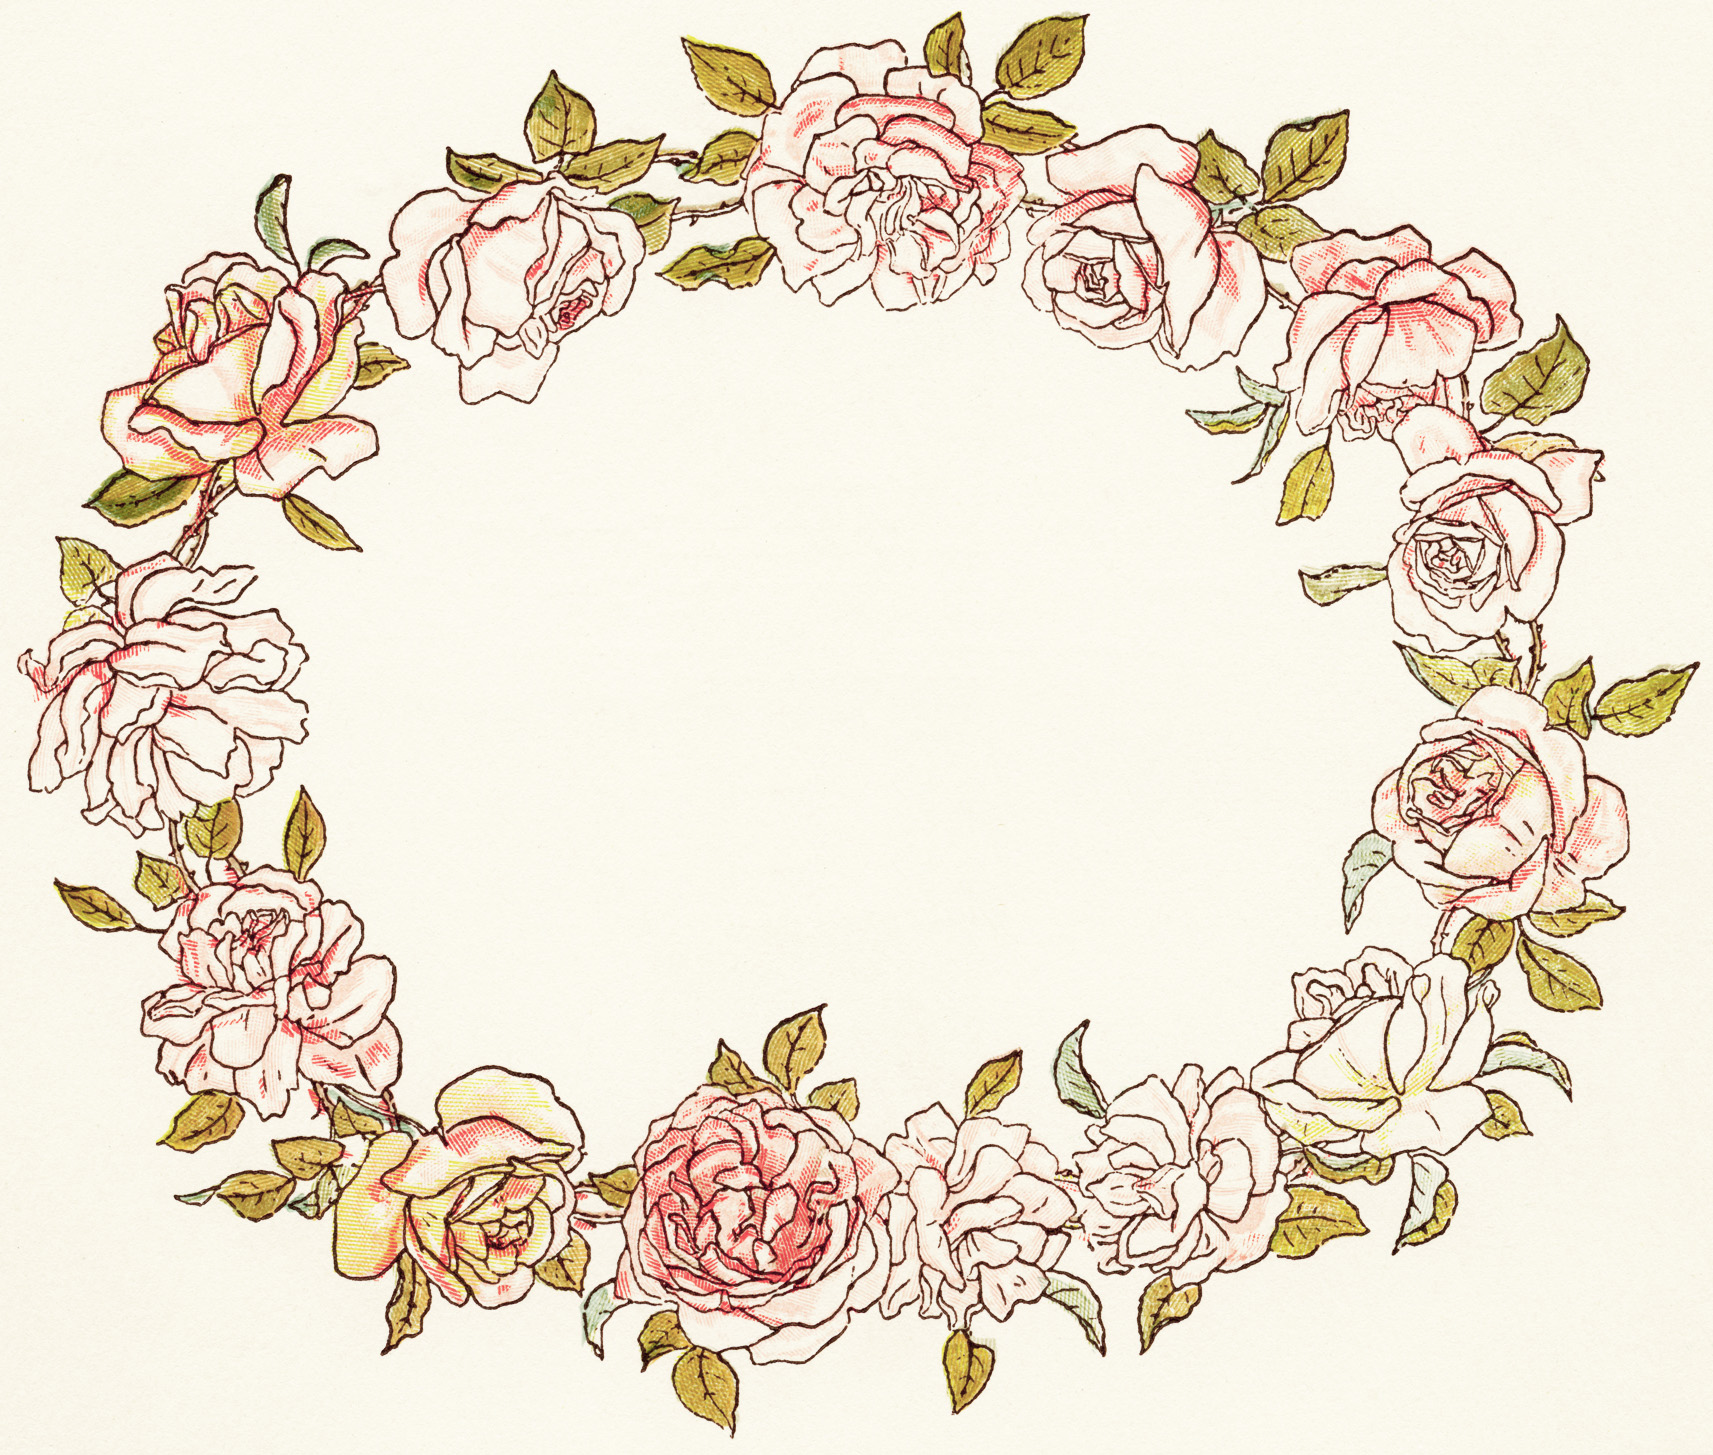 Floral Wreath Free Vintage Illustration Old Design Shop Blog